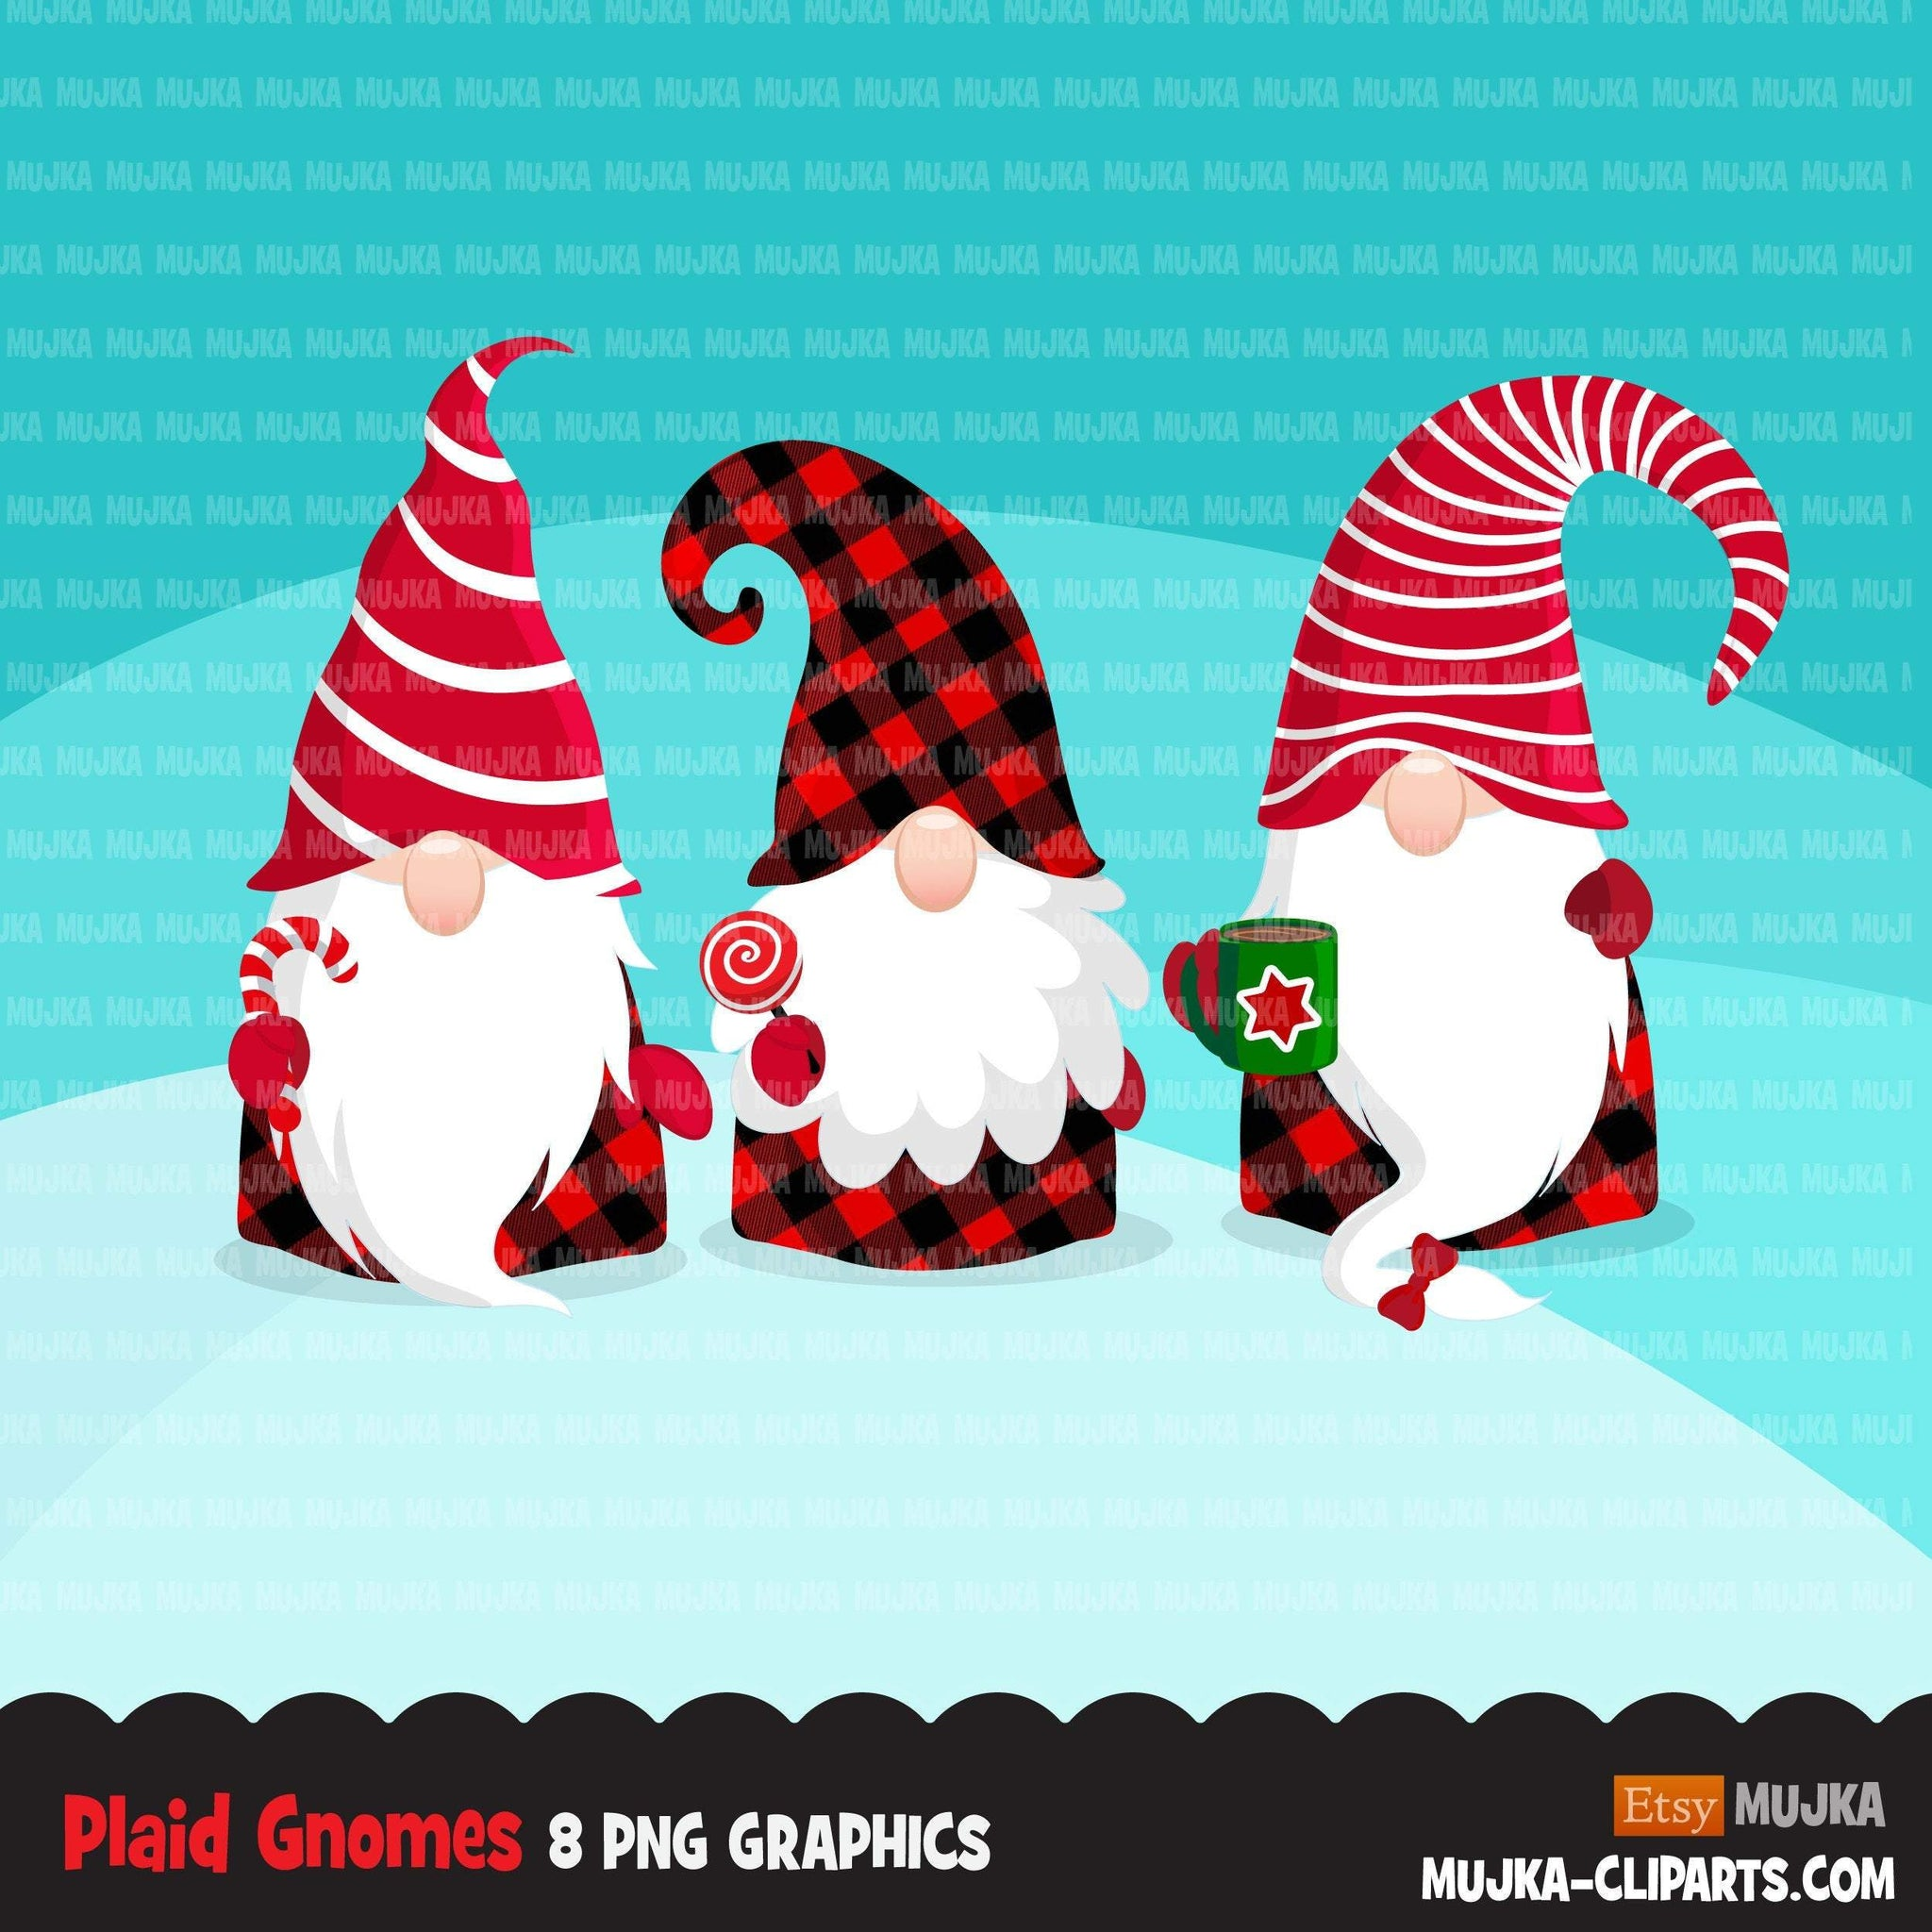 Christmas gnomes PNG Clipart, Black gnomes in plaid Gnome graphics, Nordic Holiday, noel, cute graphics